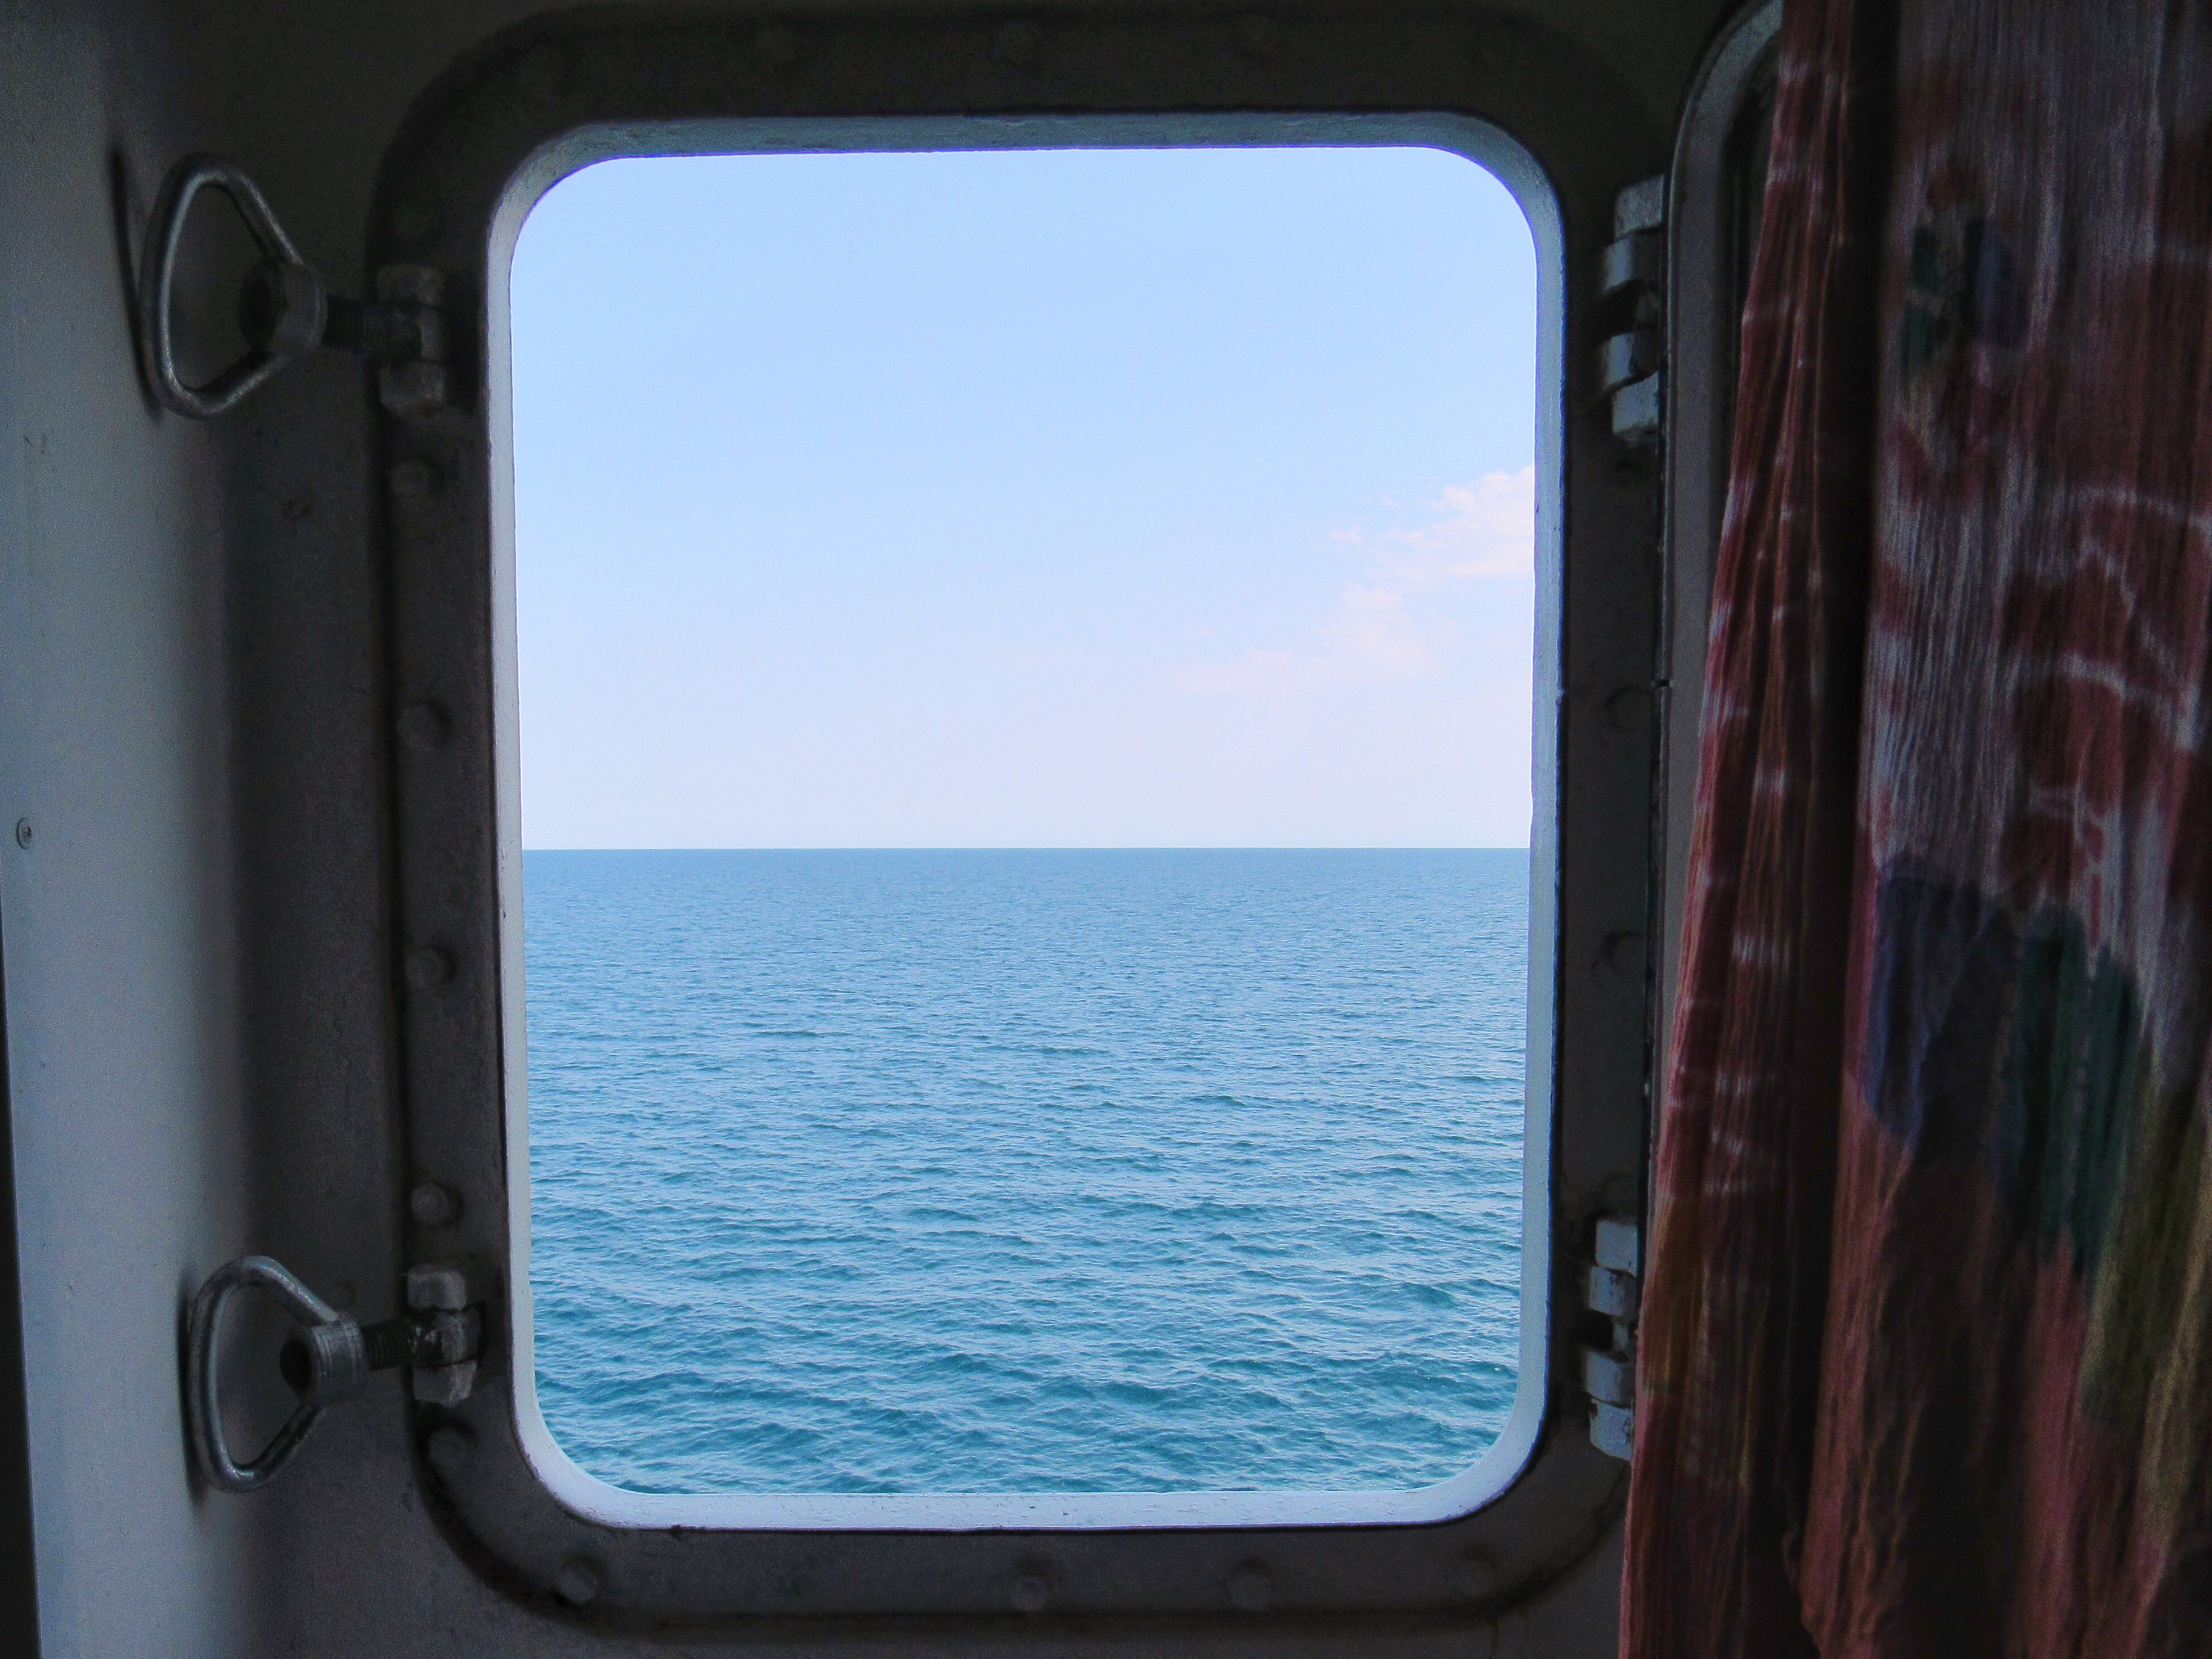 View through the ferry cabin window